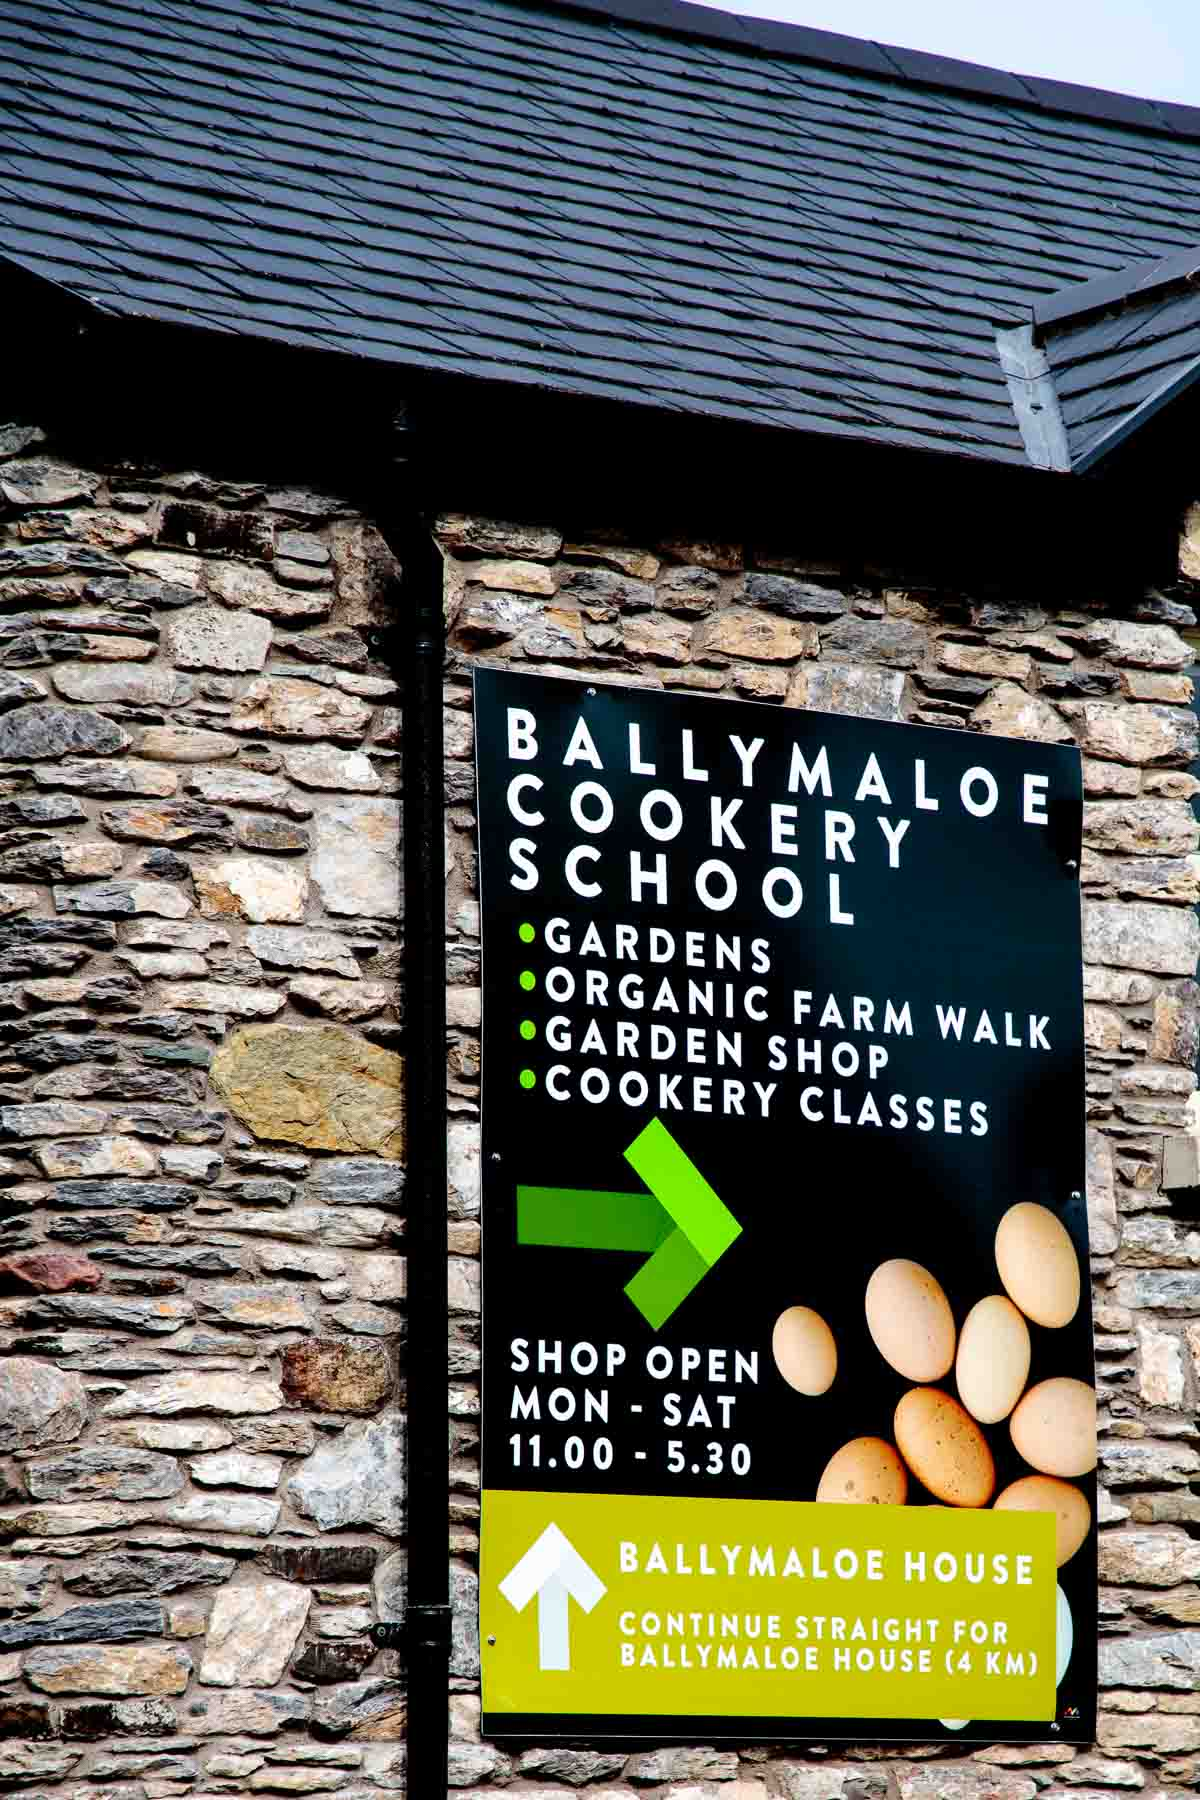 Photo of the road sign for the Ballymaloe Cookery School on a stone building.